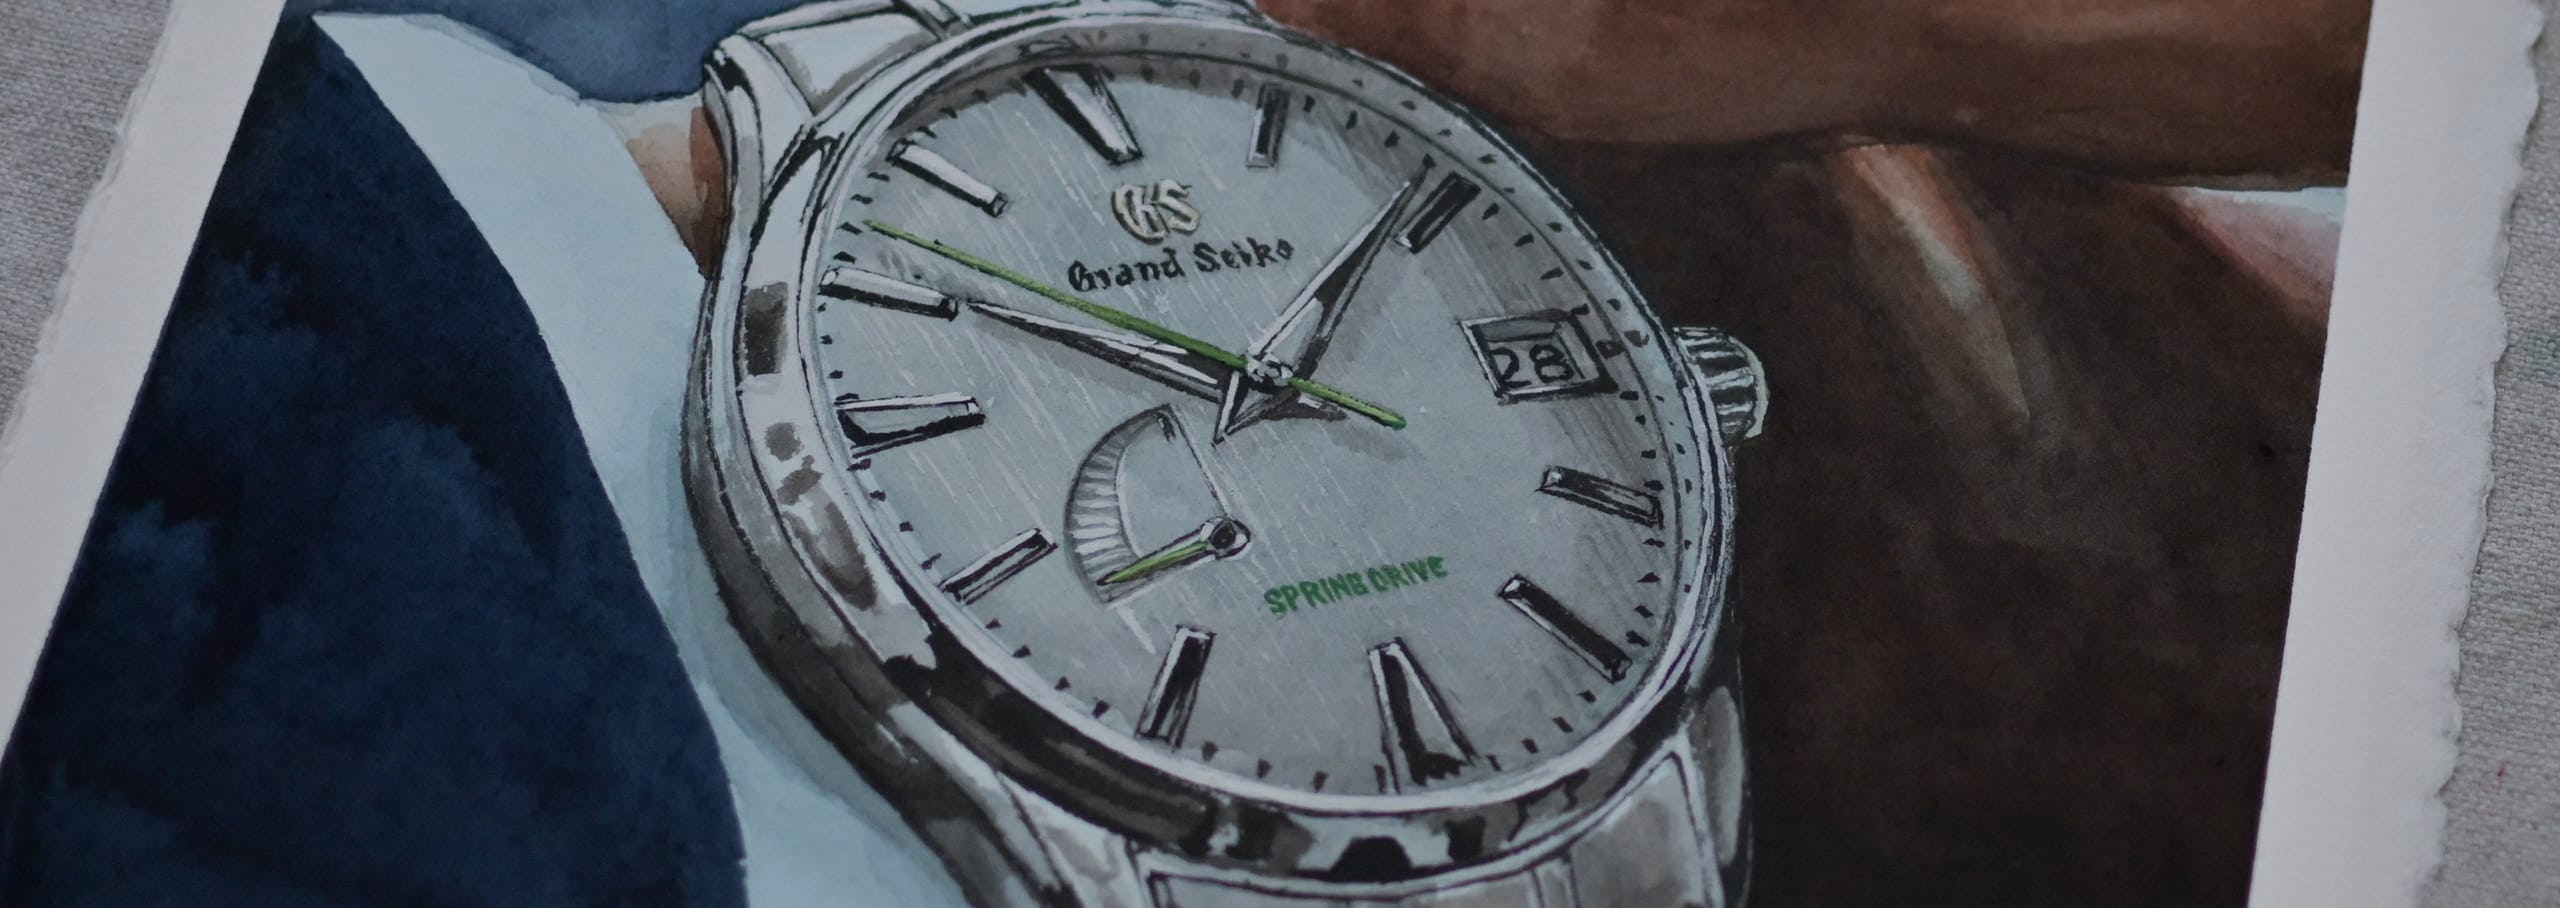 Featured Video: Behind the Scenes with Grand Seiko's Extraordinary Dials